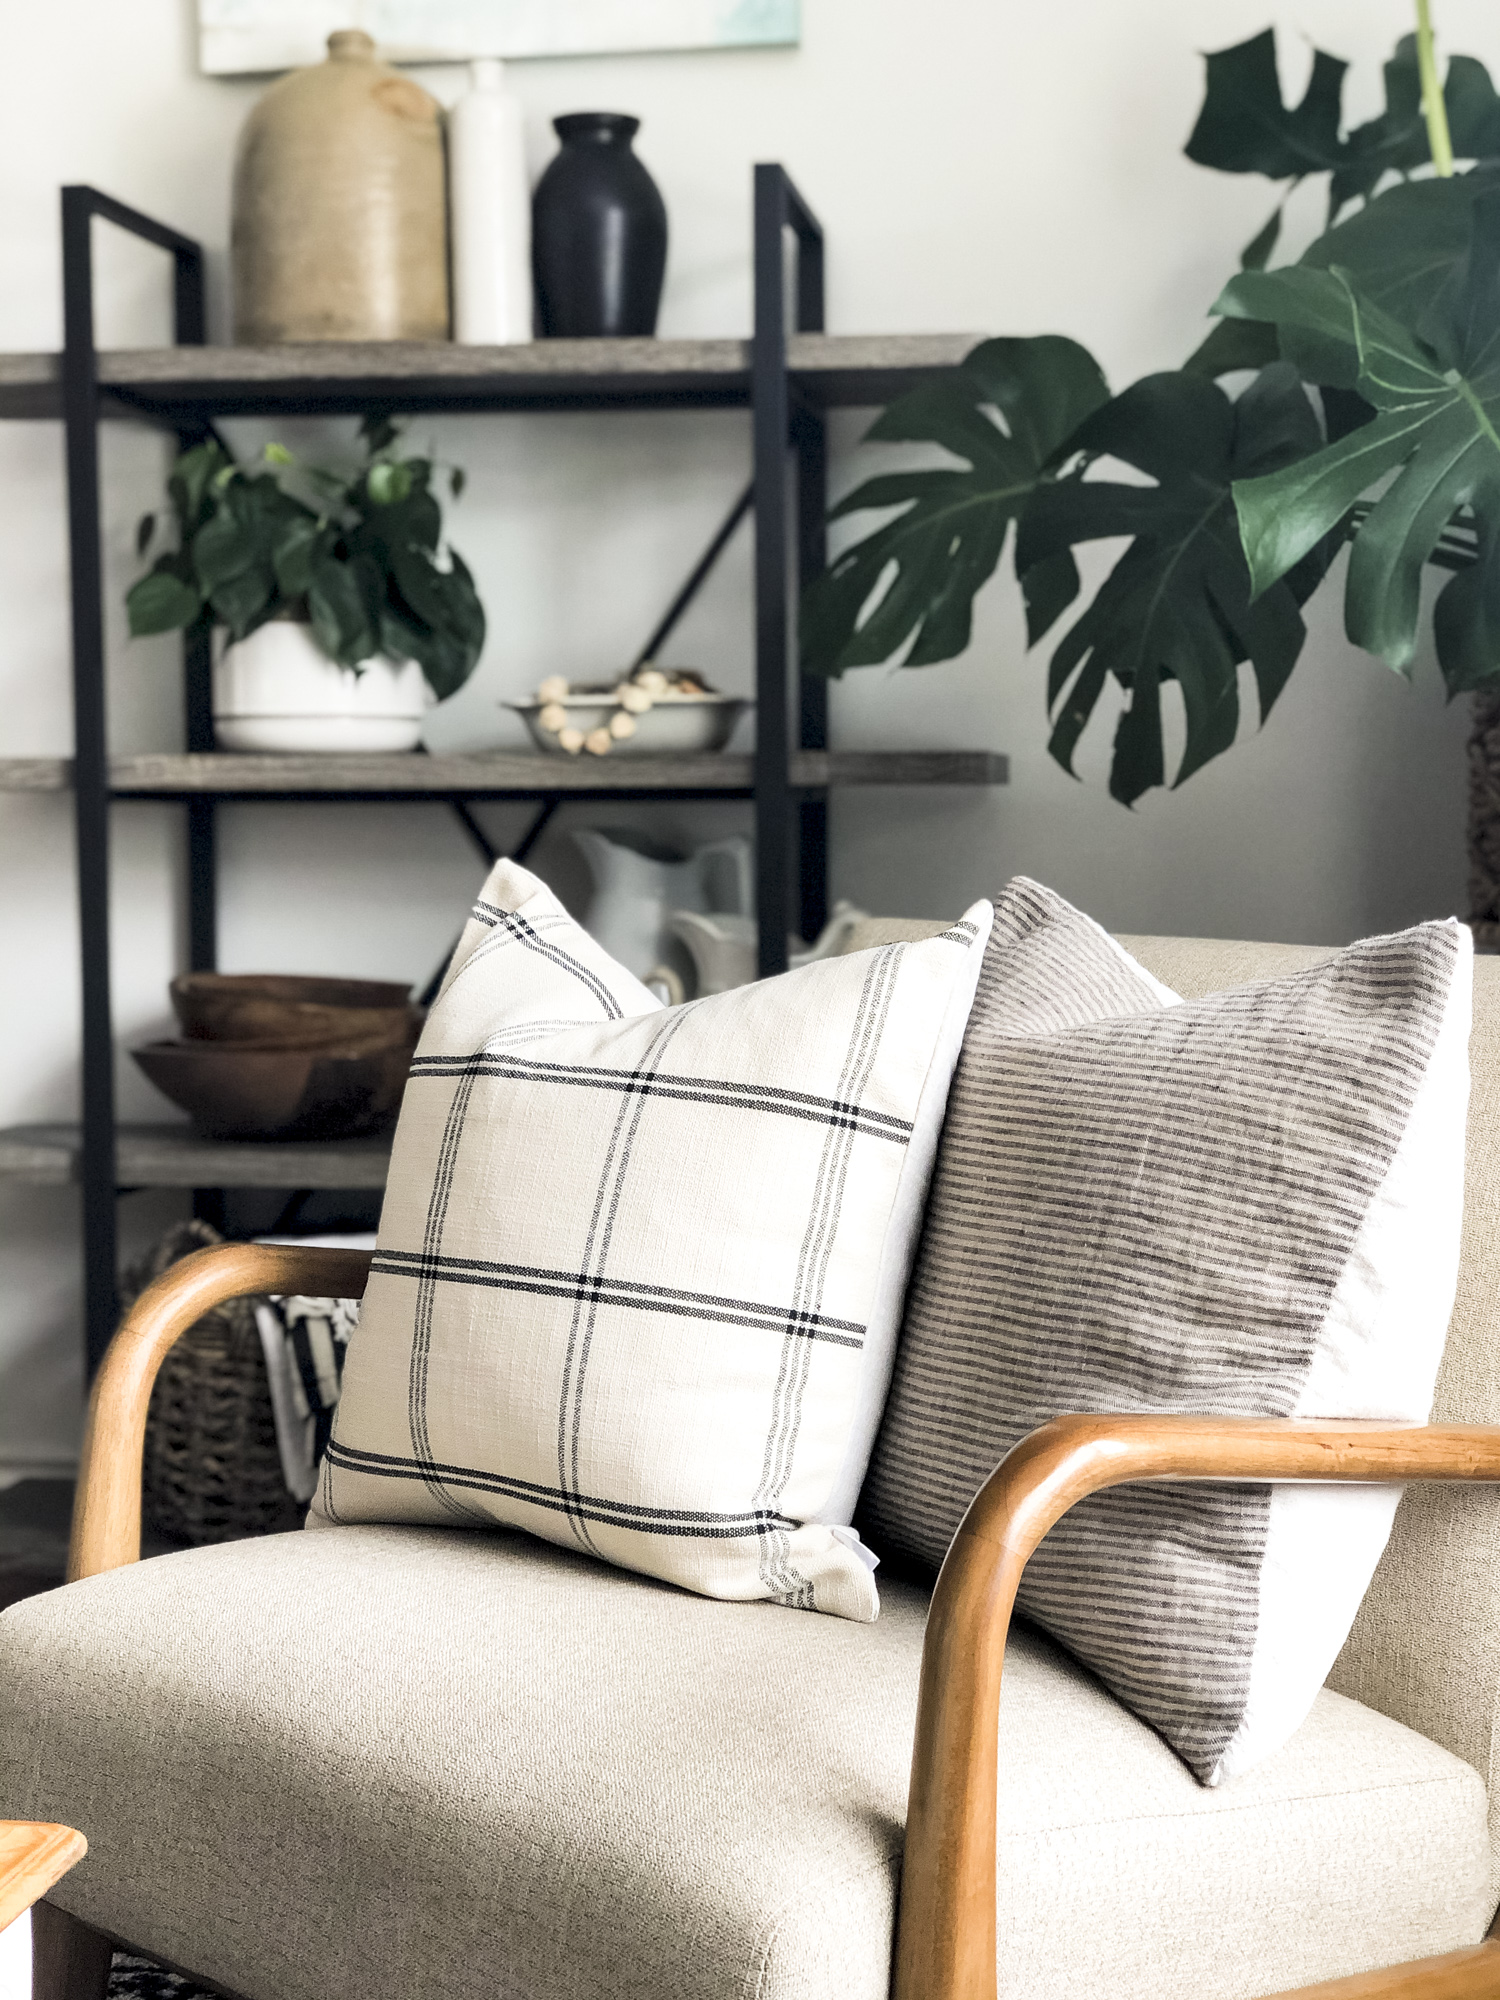 How to style neutral pillow covers.